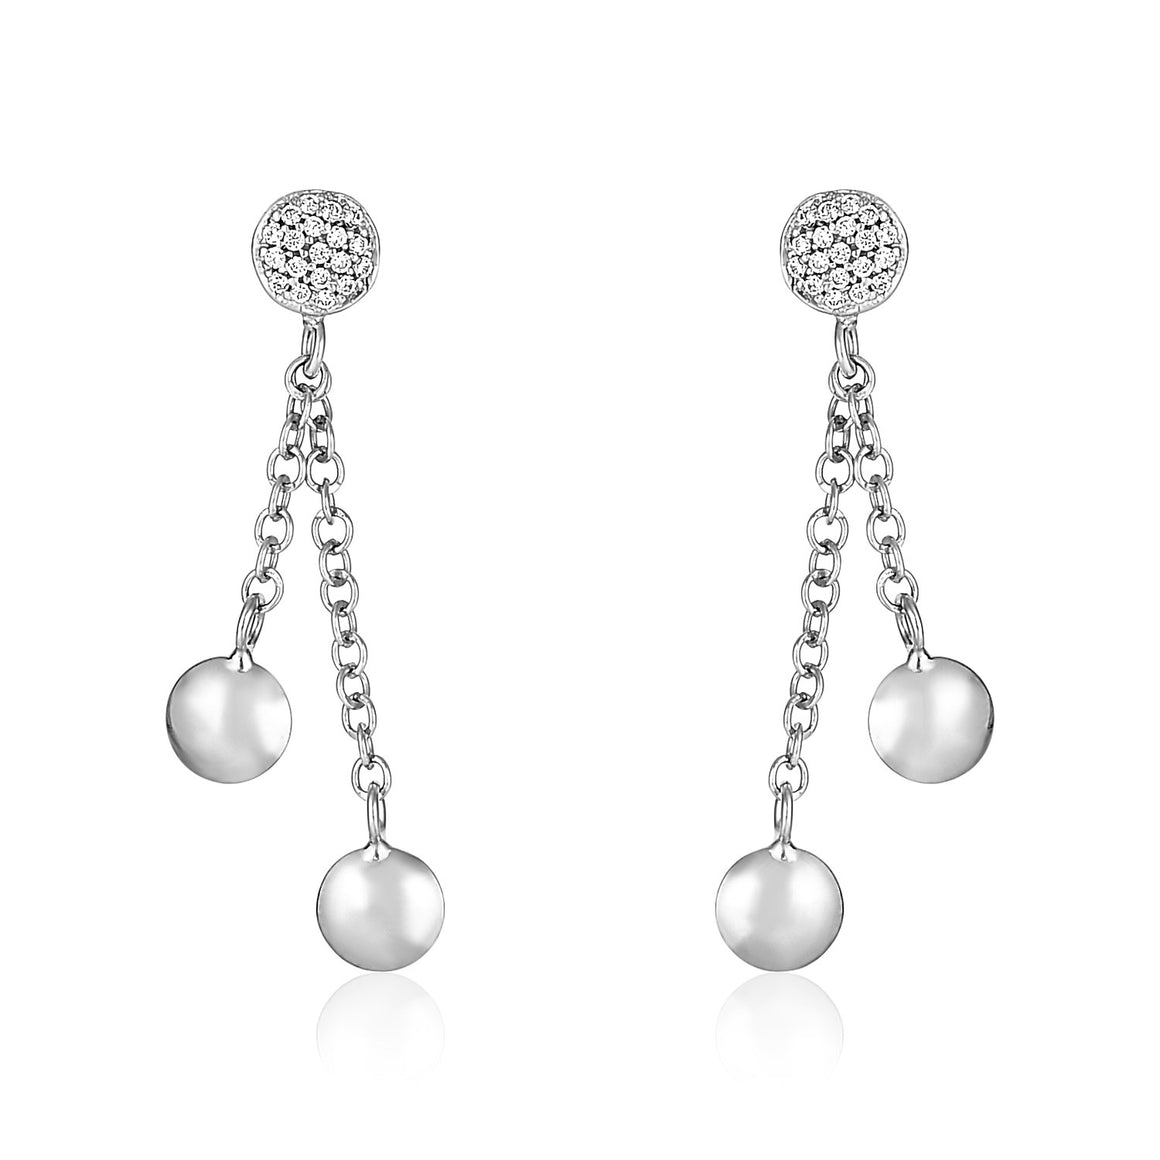 14k White Gold and Diamond Puff Circle Dangle Earrings (1/5 cttw)